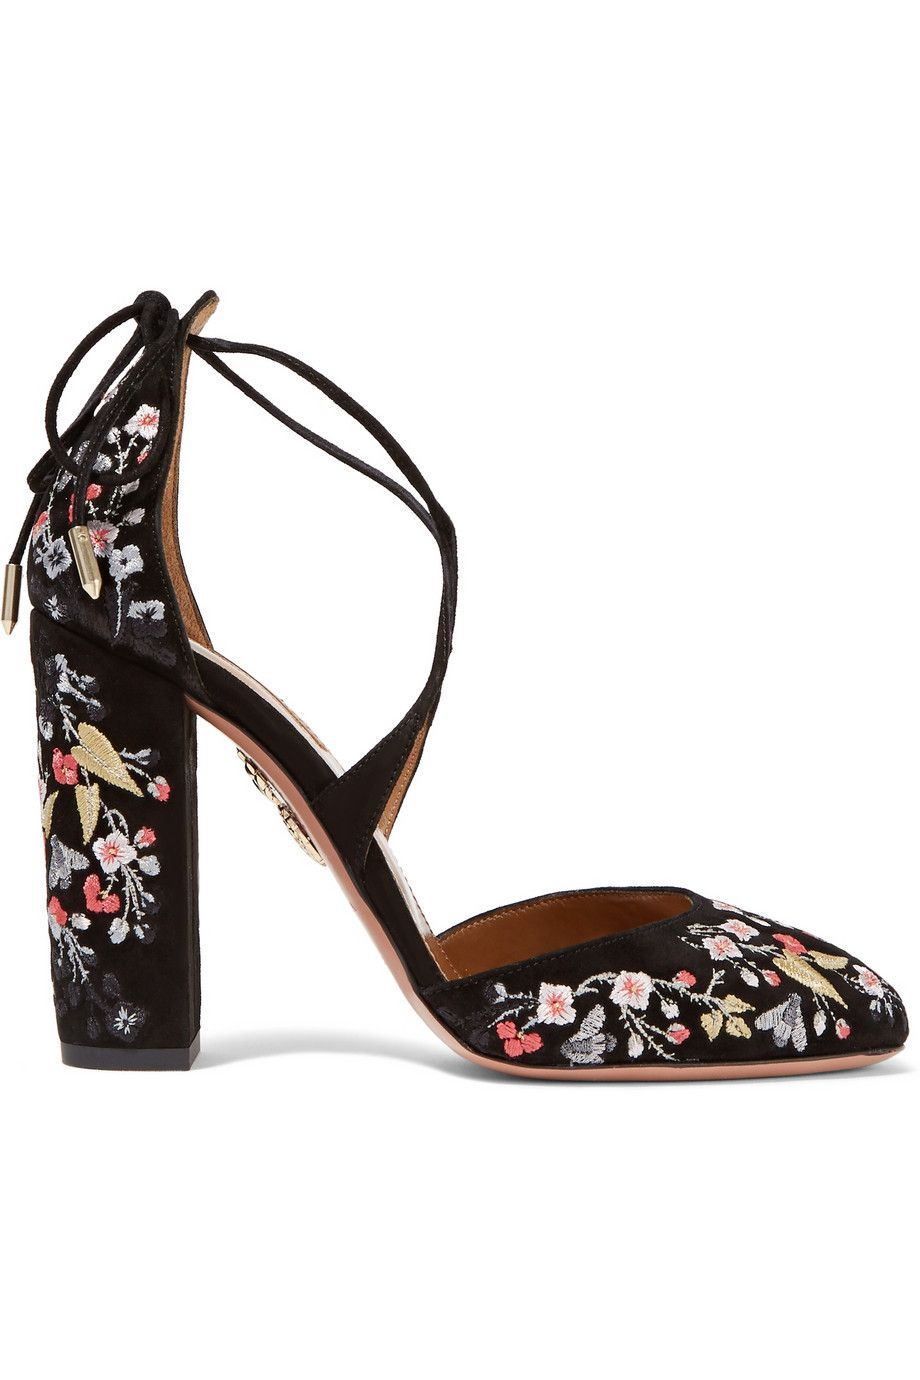 Aquazzura Karlie Floral-Embroidered Pumps cheap visit new cheap sale best store to get clearance low cost lowest price cheap online MYfptEoG